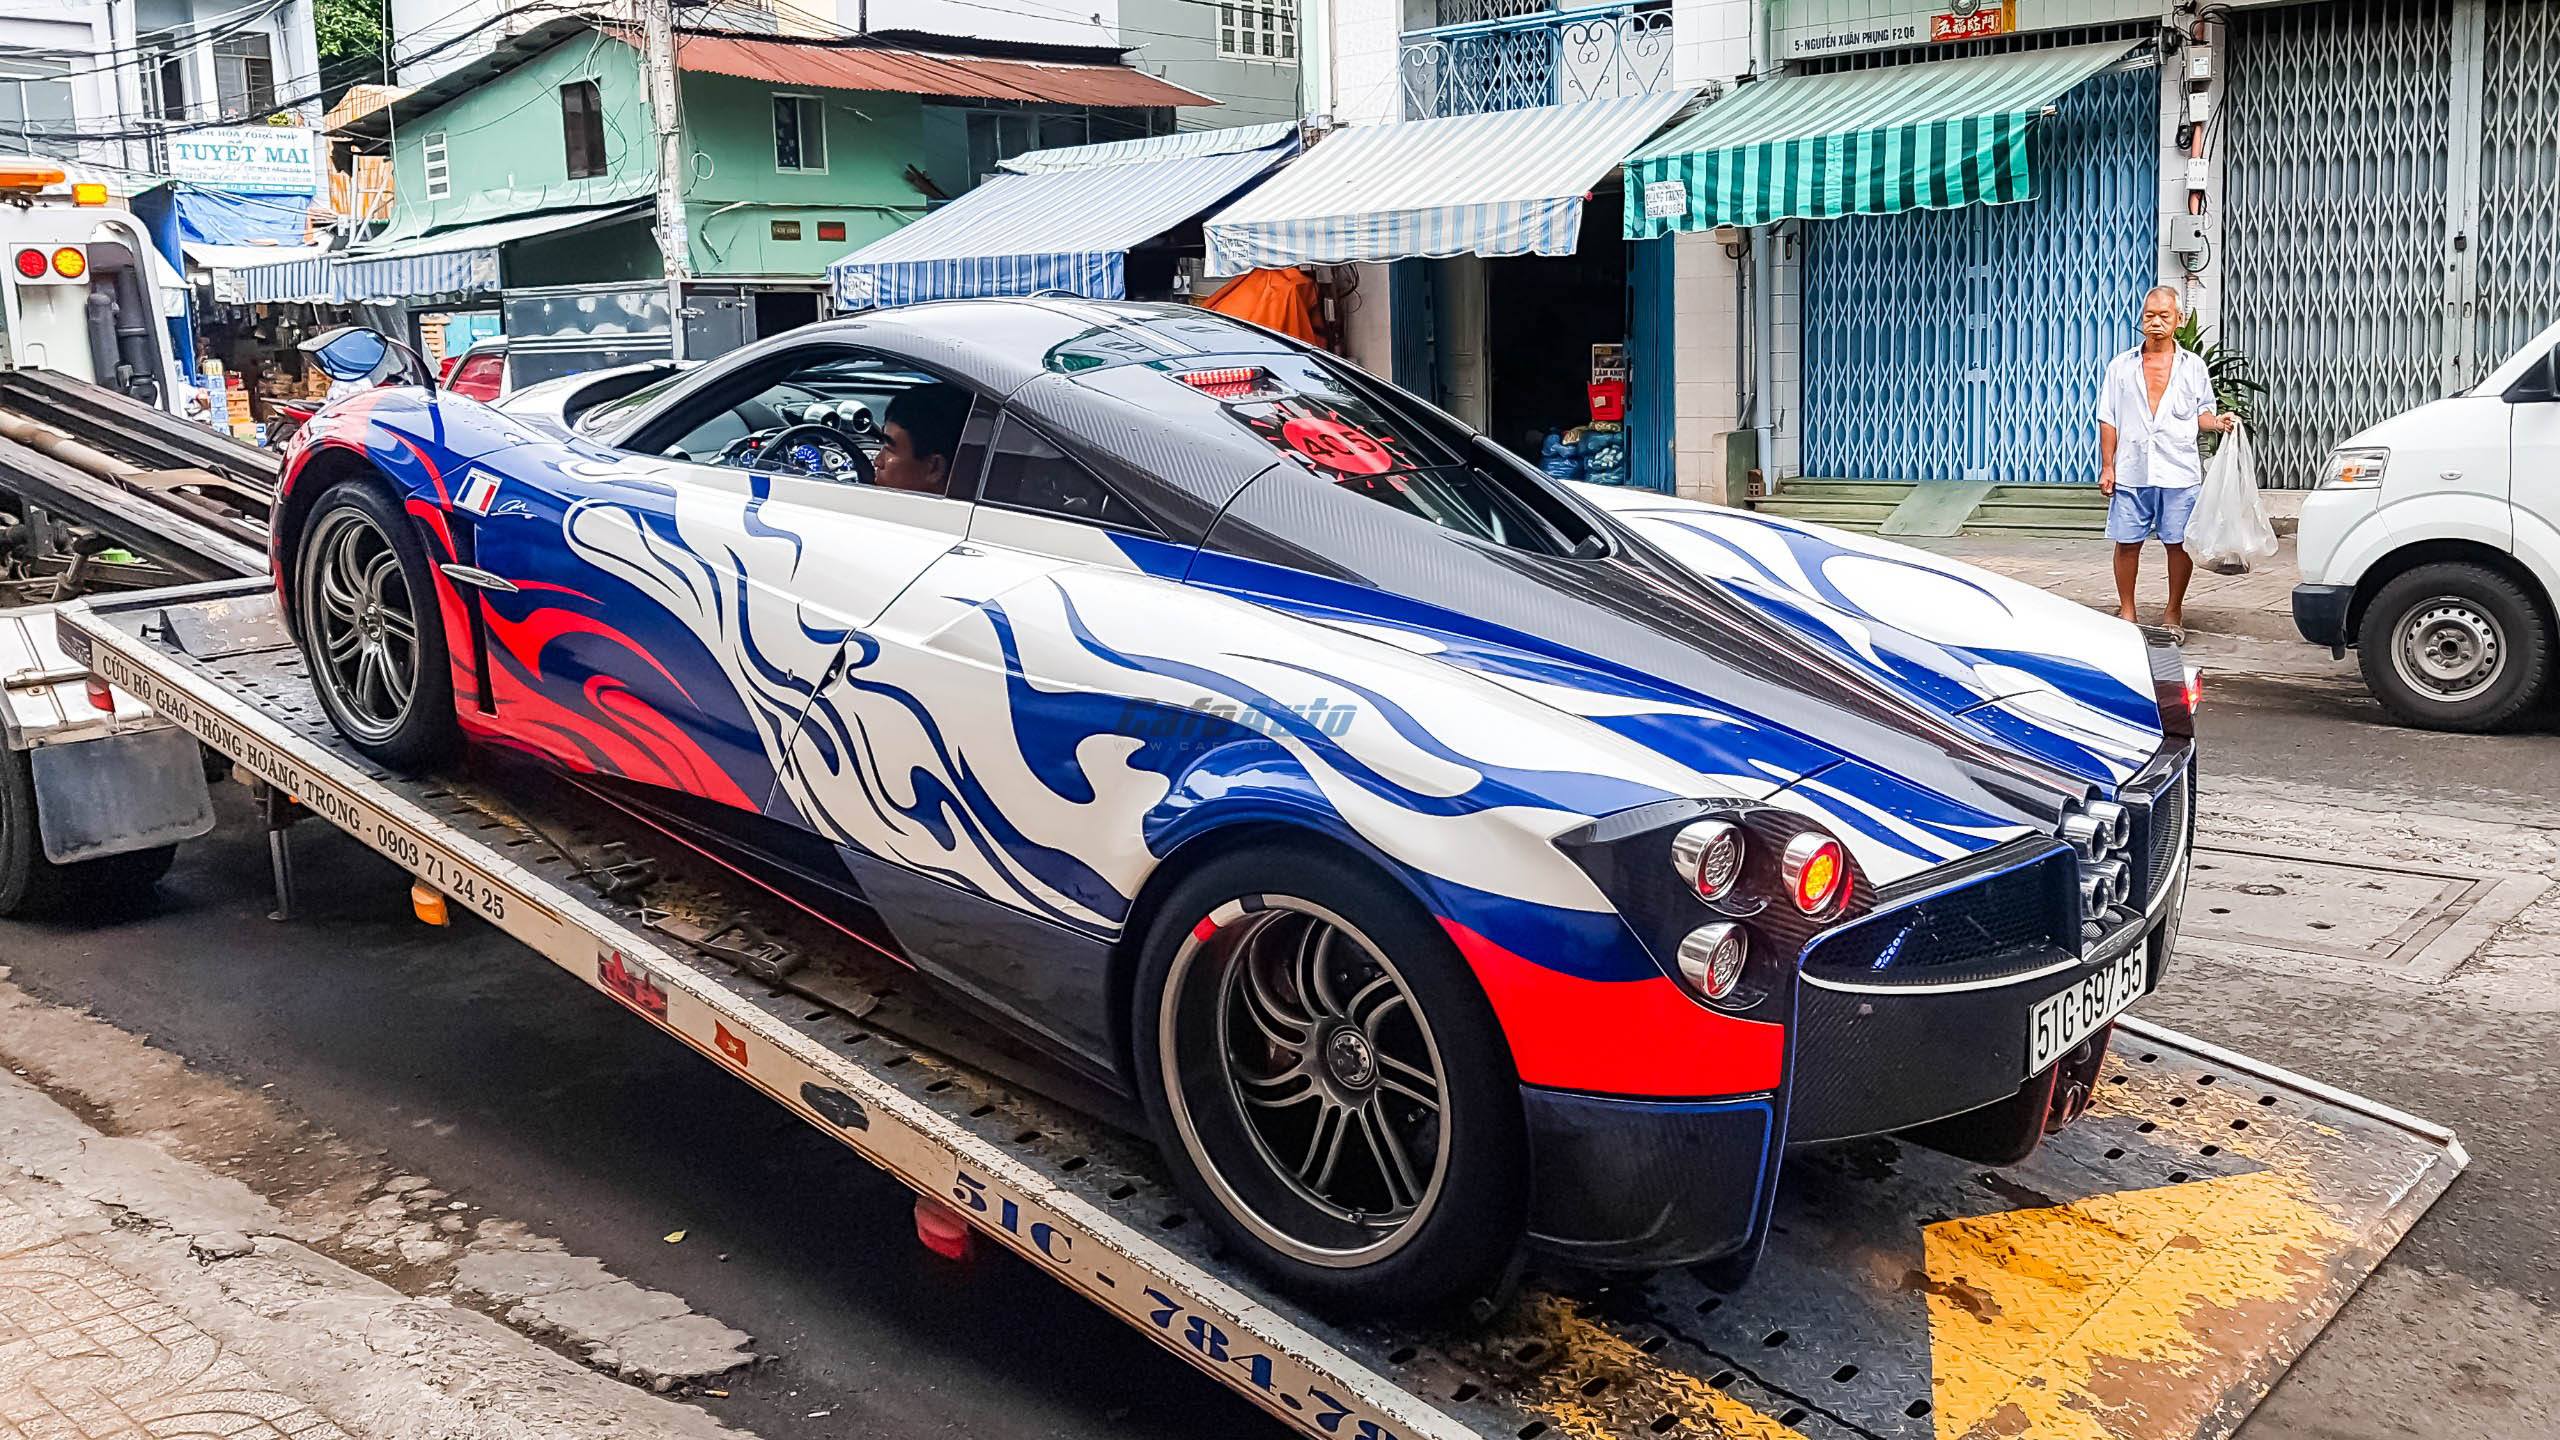 paganihuayra-cafeautovn-5